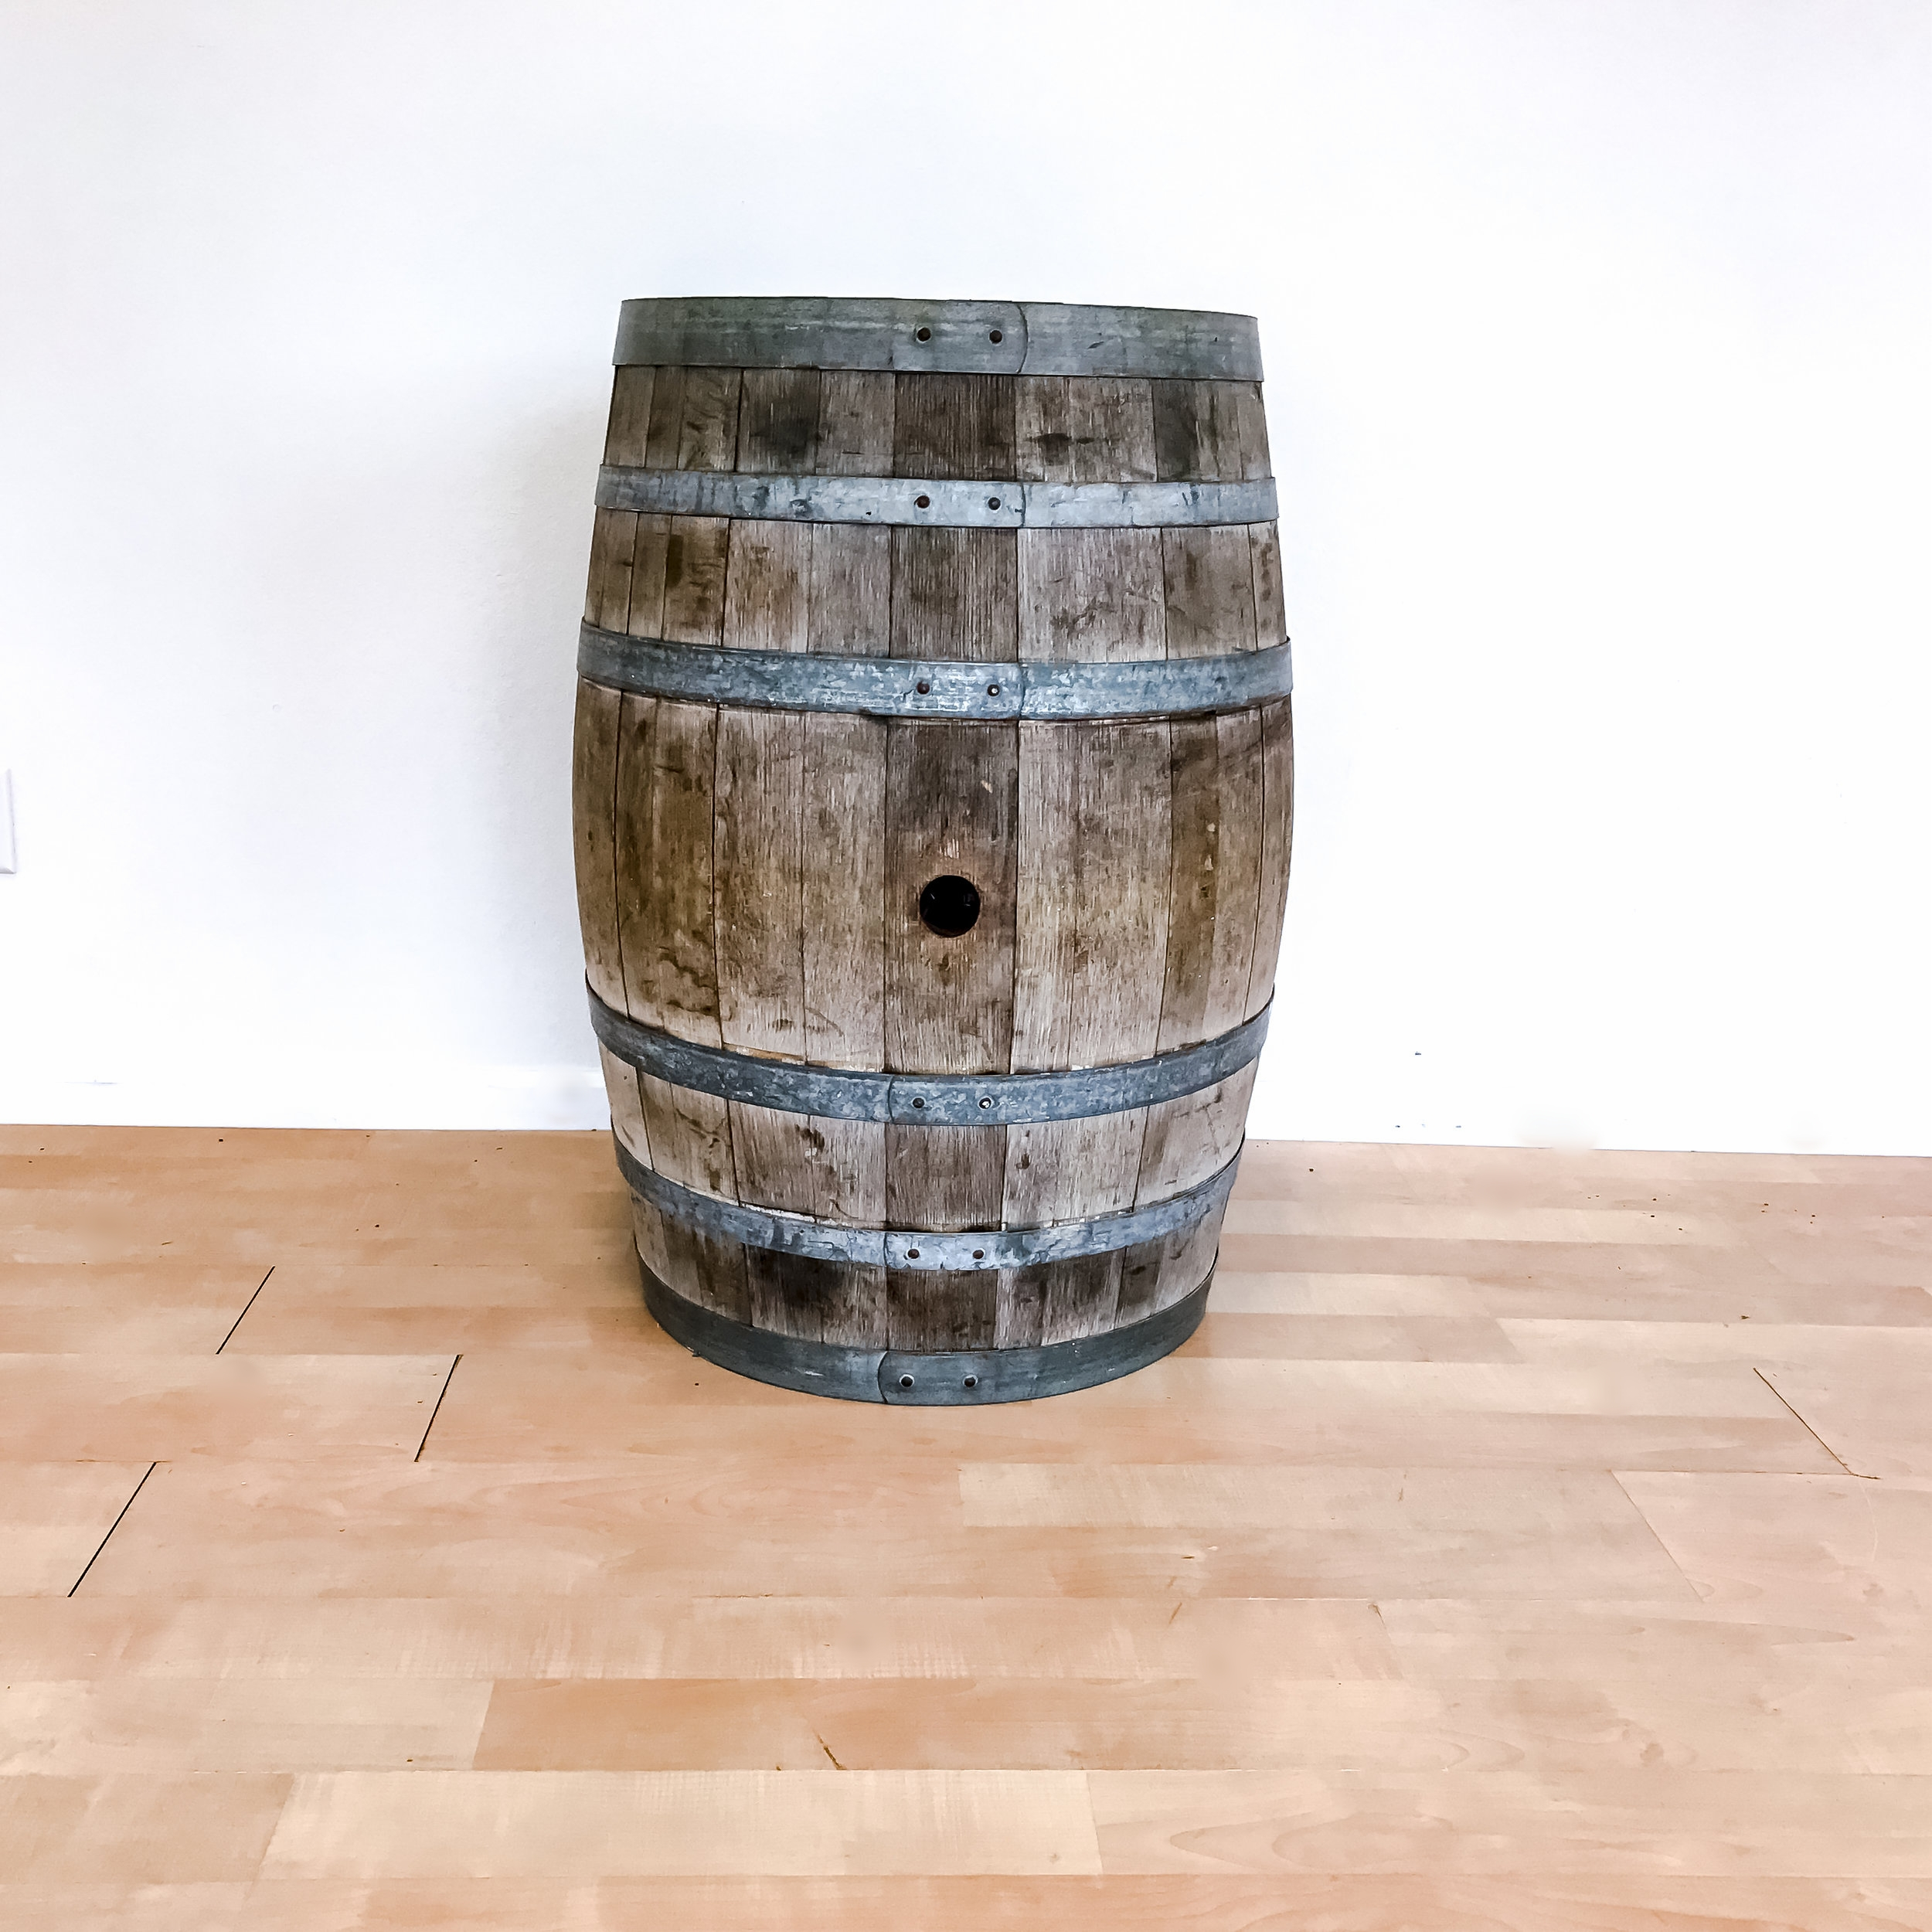 renee landry events weathered wine barrel oak decor wedding rentals.jpg